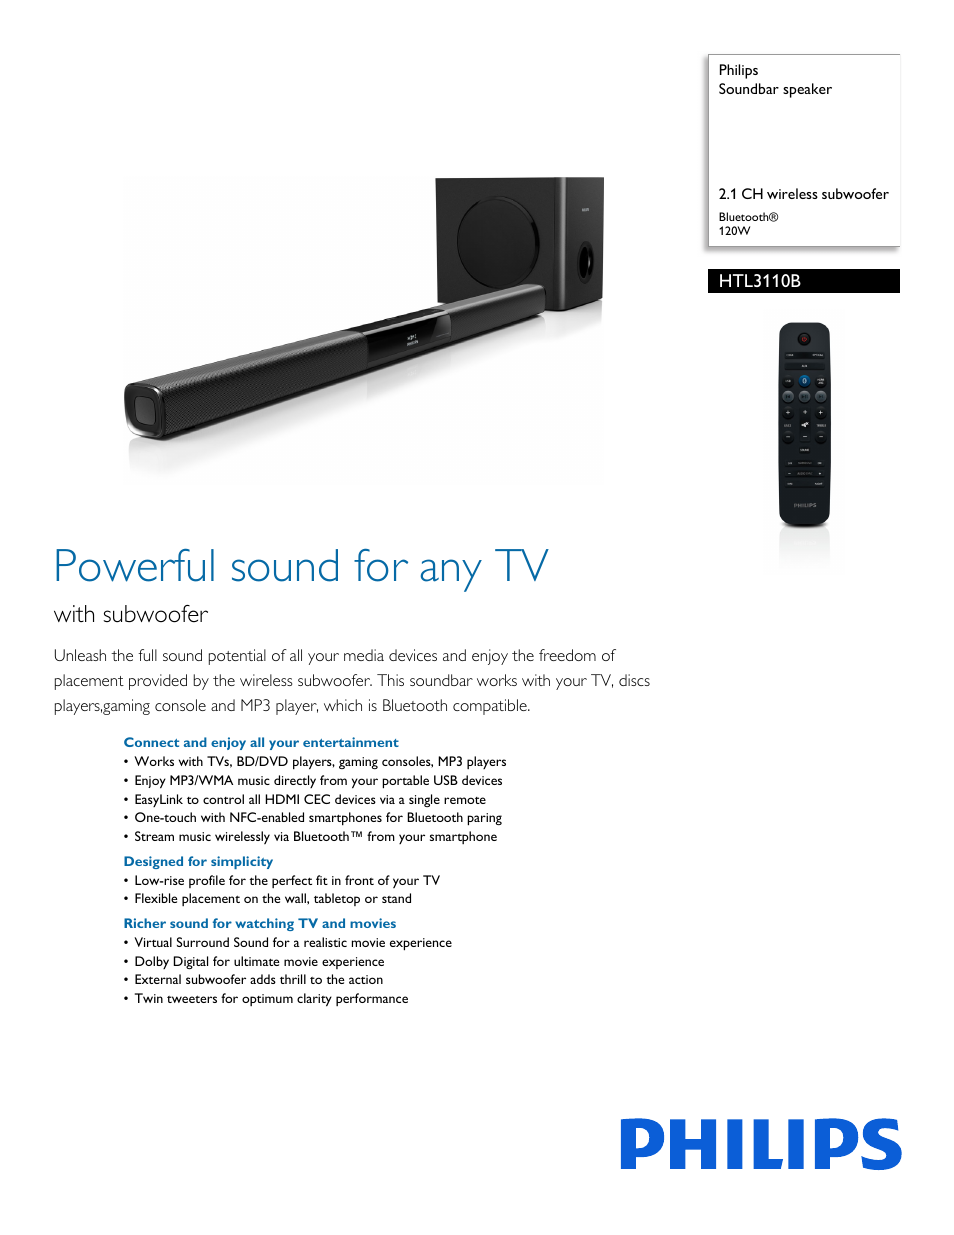 Hook up philips soundbar